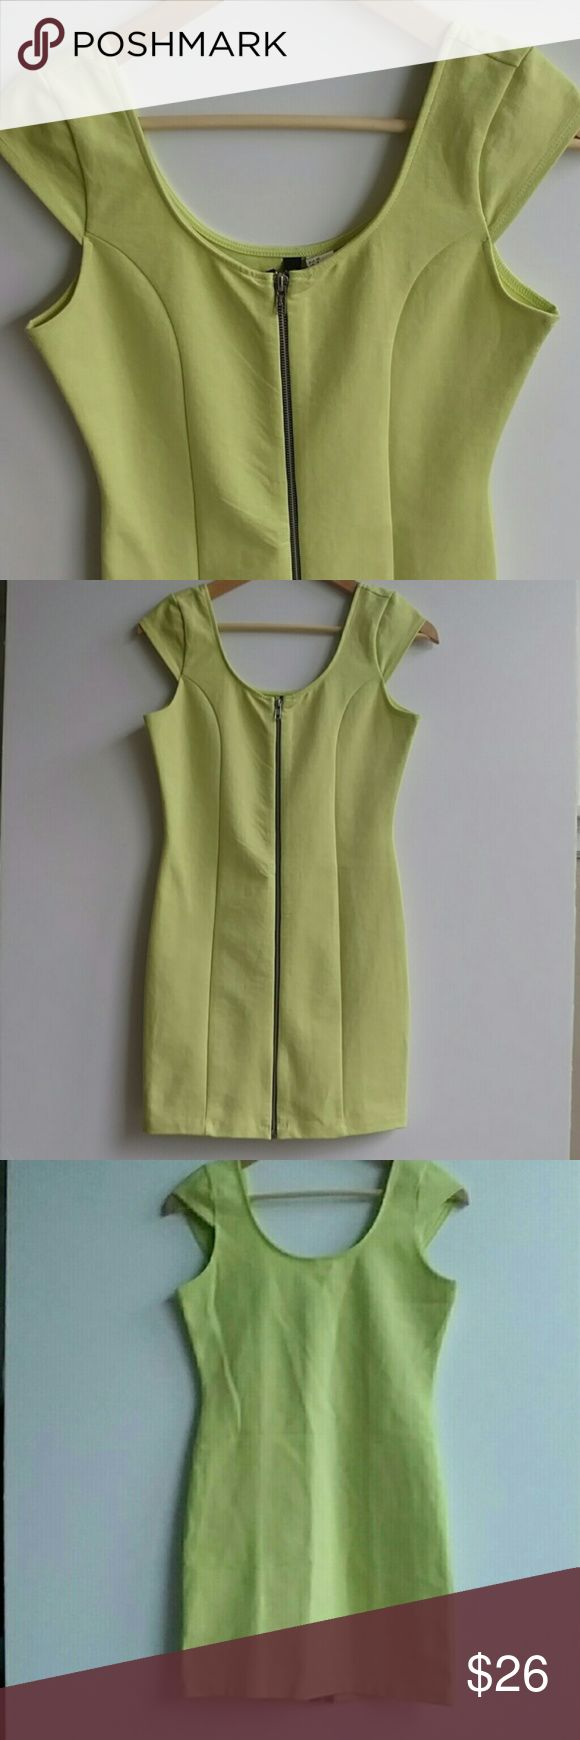 "Divided H&M Bodycon Dress Green, Zip Front - Sz 8 Divided by H&M dress, neon Green/yellow with a zip closure in the front and cap sleeves. Size 8. Dress is fitted and made from 72% cotton, 24% polyamide, 4% elastane. Perfect dress for your upcoming vacation to the beach! Lay flat measurements: Chest: 31"" Length:29.75"" Shoulders: 11.5"" Waist:26' Please reach out if you have any additional questions! :) Divided Dresses Mini"